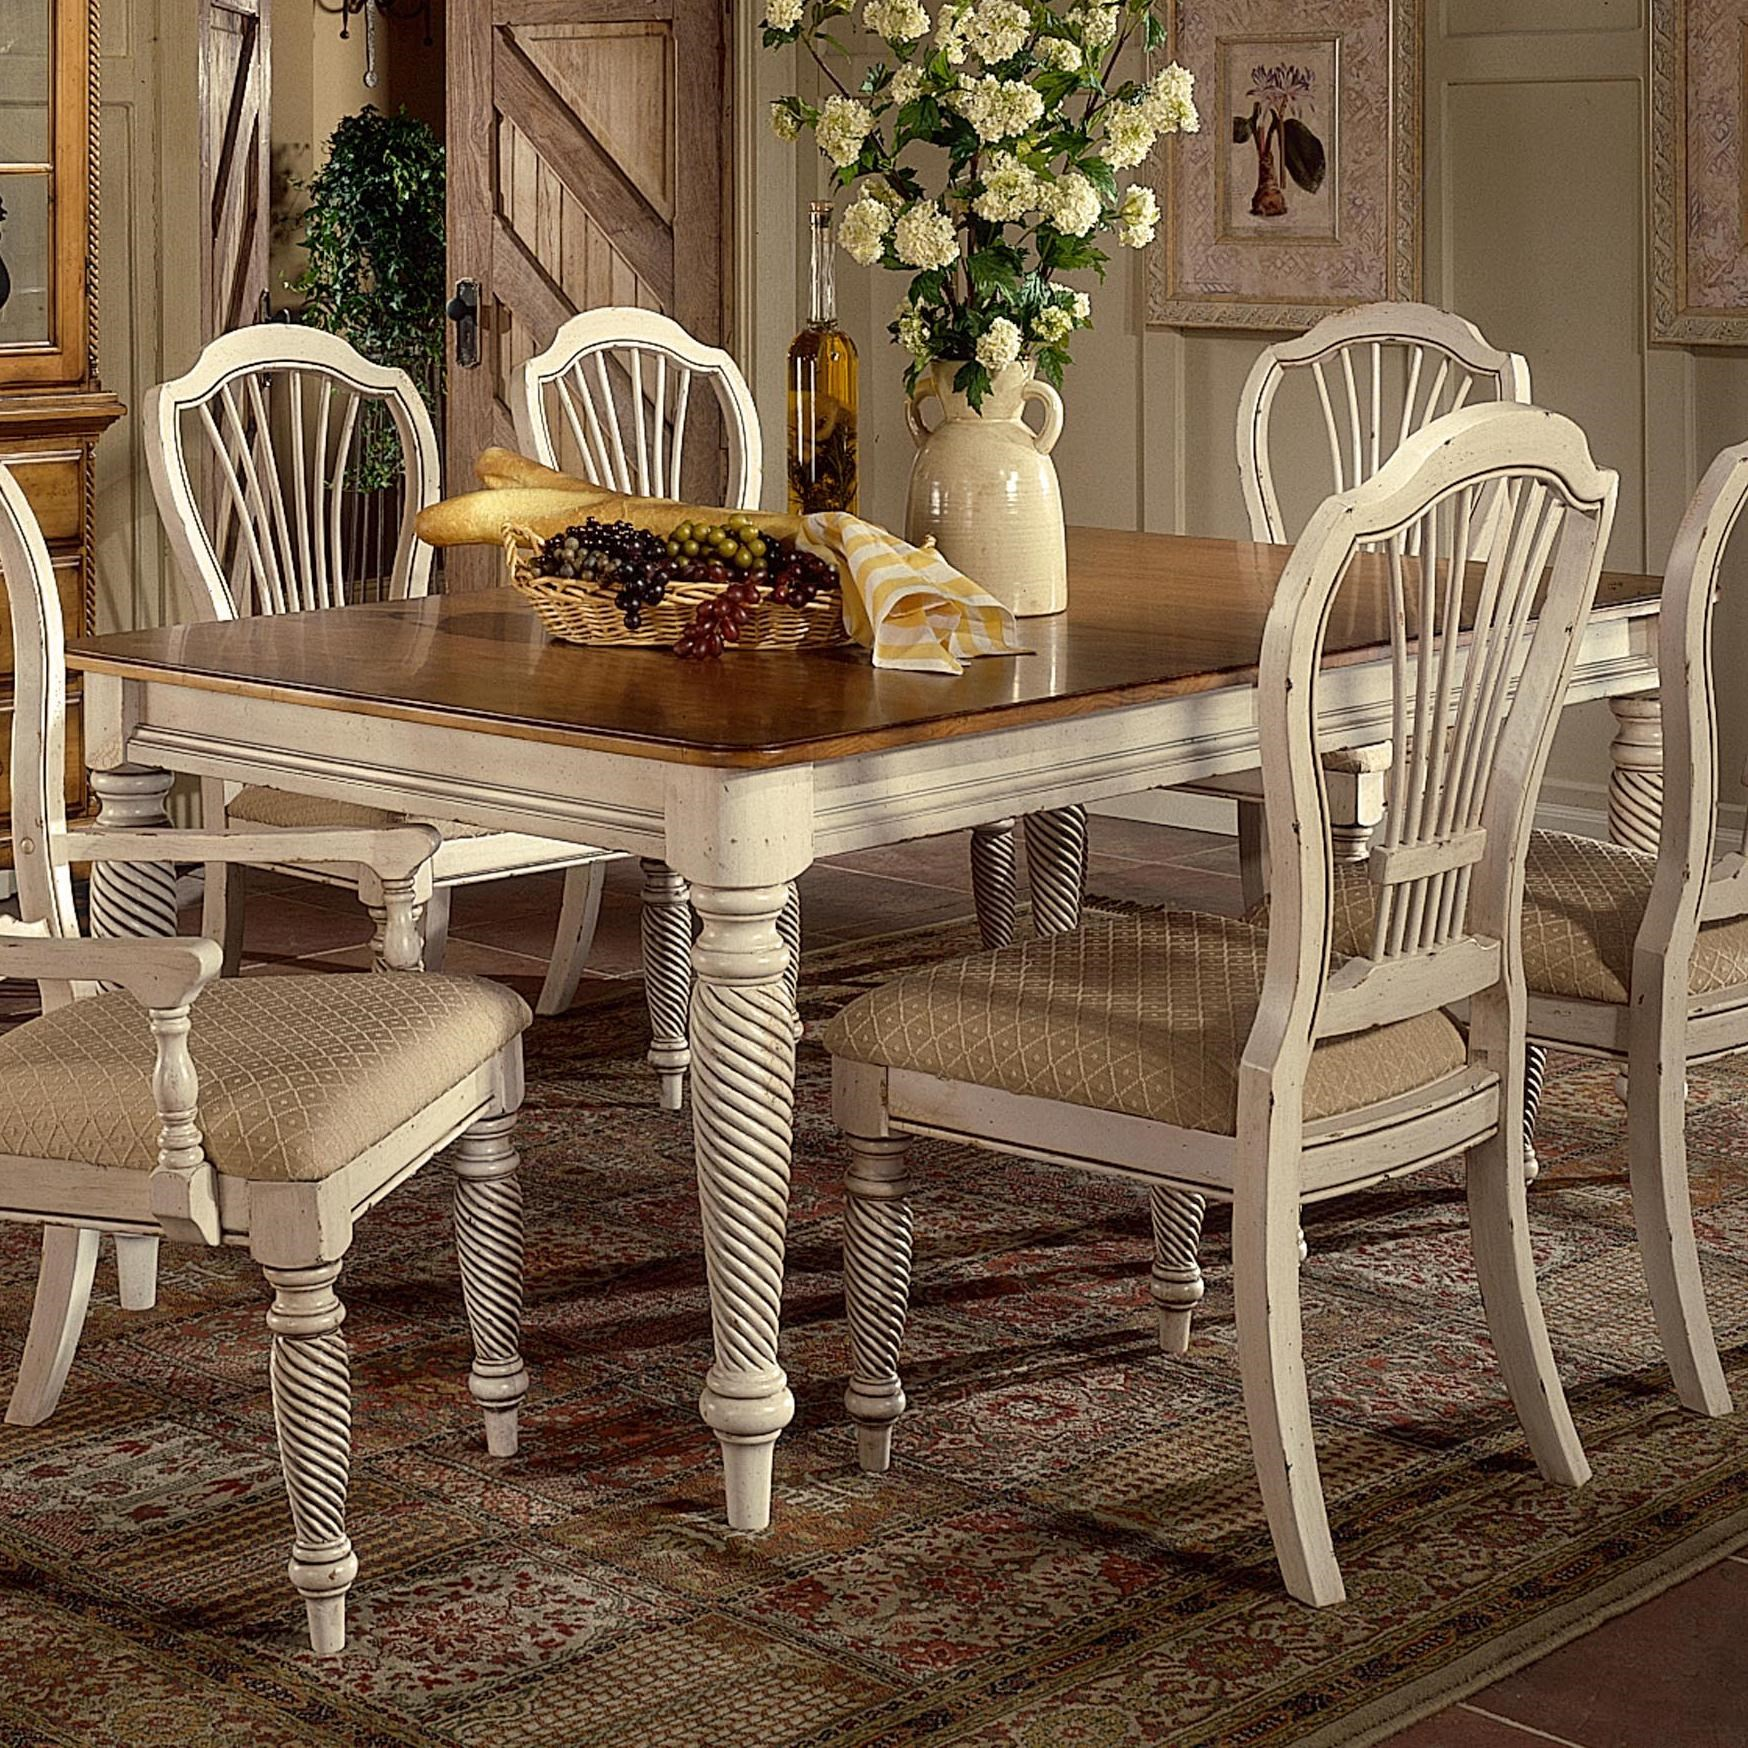 Superb Hillsdale Wilshire Rectangle Two Tone Double Leaf Dining Table Good Looking